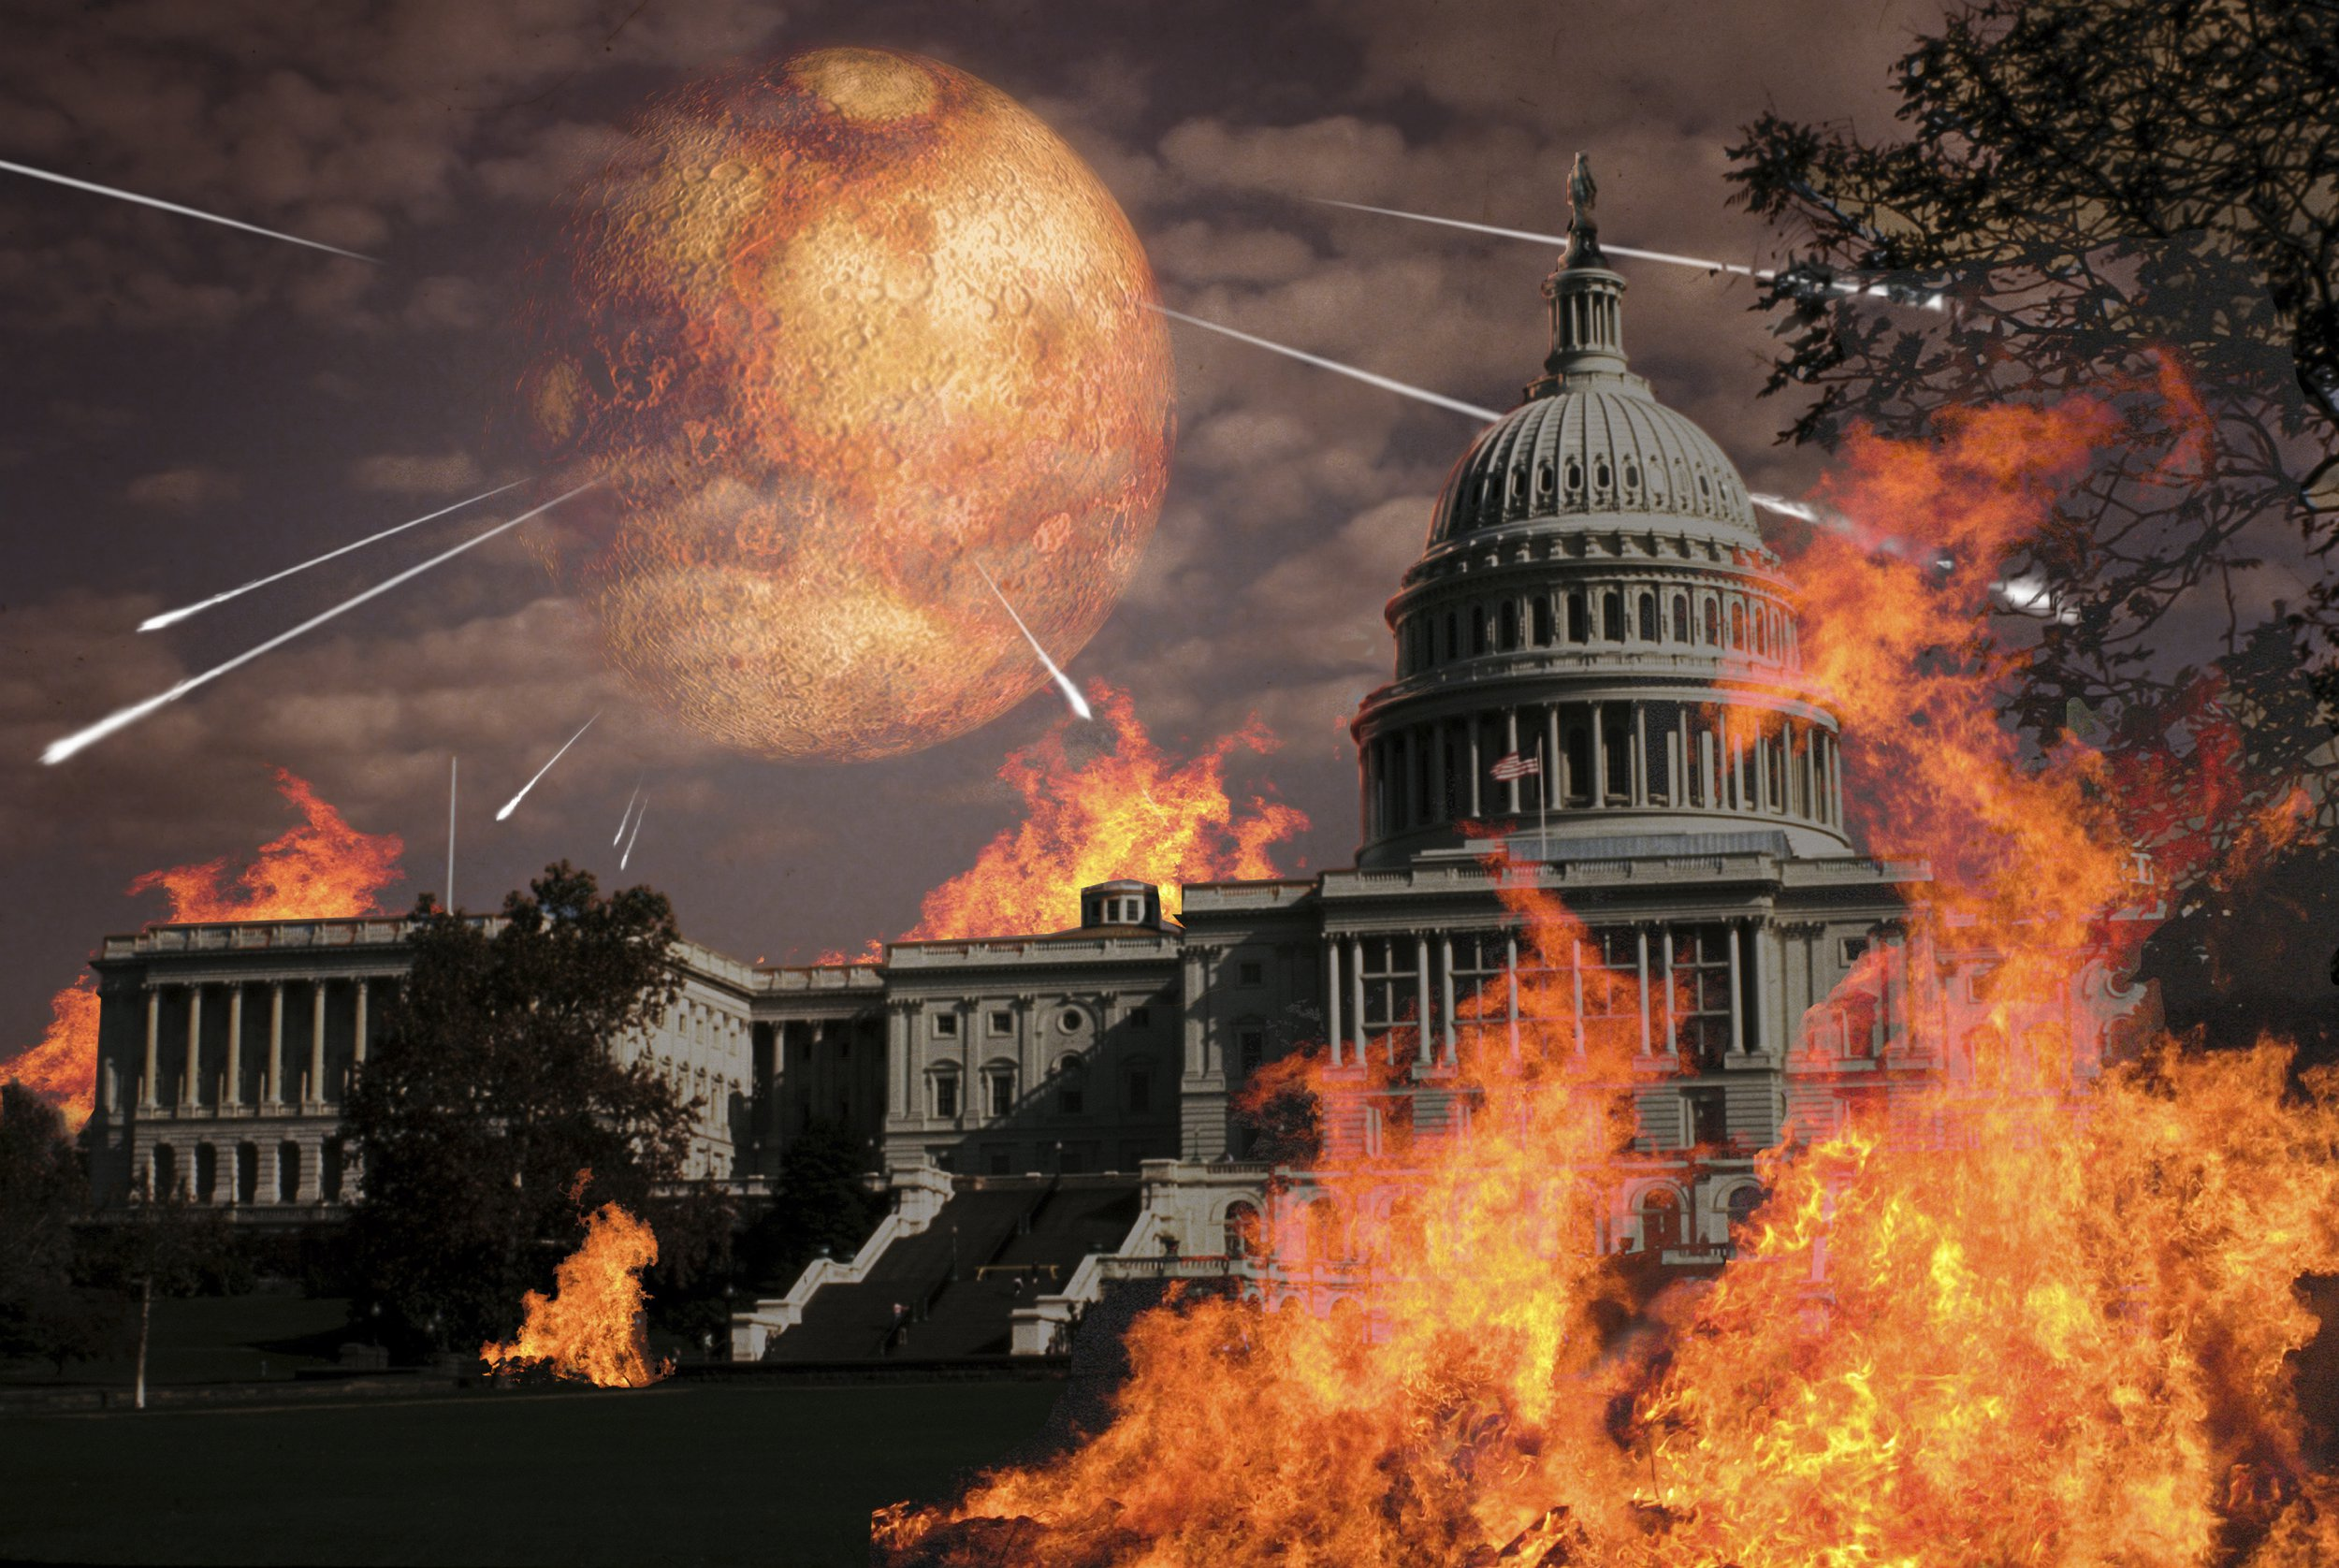 Close approach of Nibiru, Planet X, over the U.S. Capitol building.